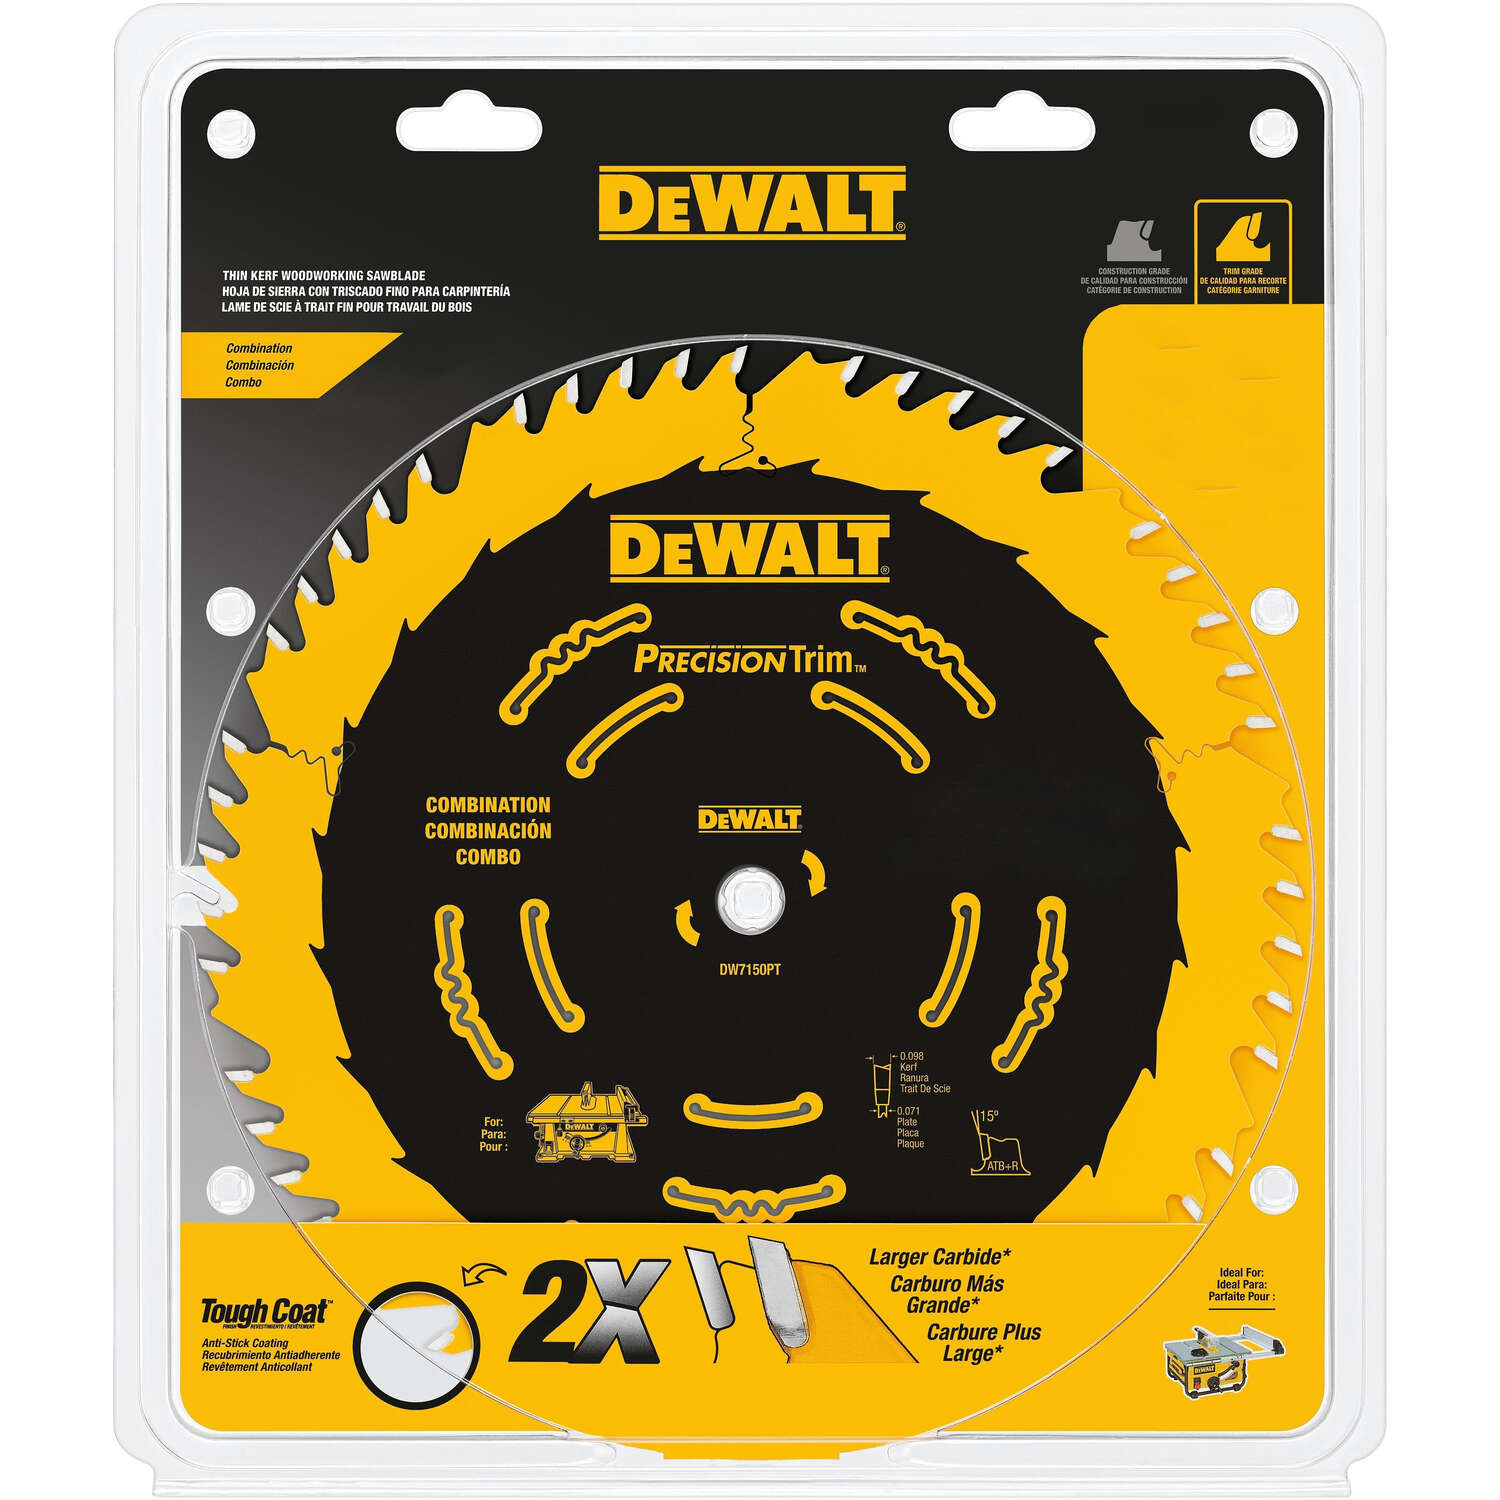 DeWalt  7-1/4 in. Dia. x 5/8 in.  Precision Trim  Carbide Tipped  Saw Blade  40 teeth 1 pk